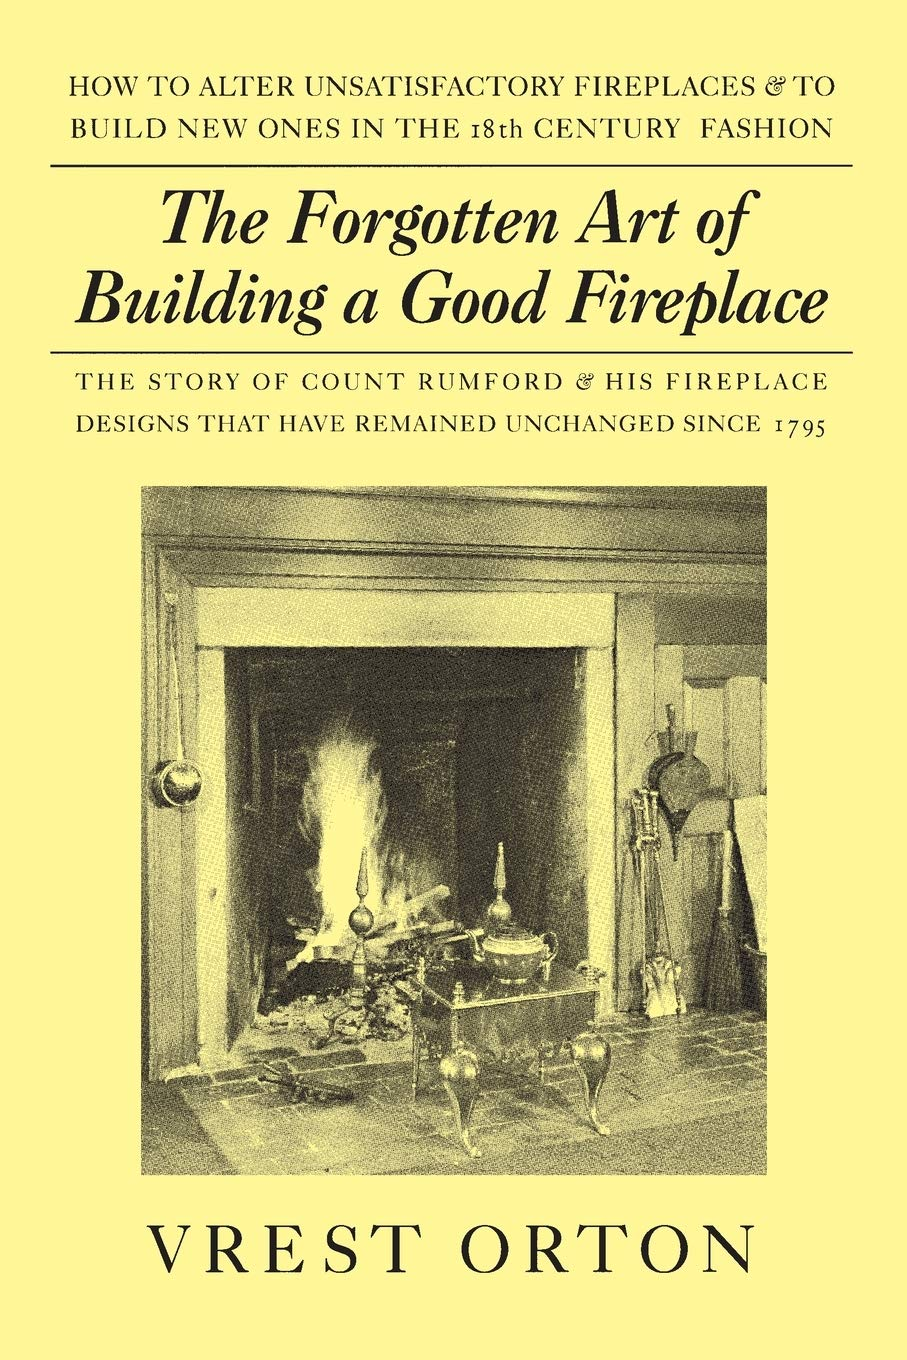 Yankee Fireplace New the forgotten Art Of Building A Good Fireplace orton Vrest